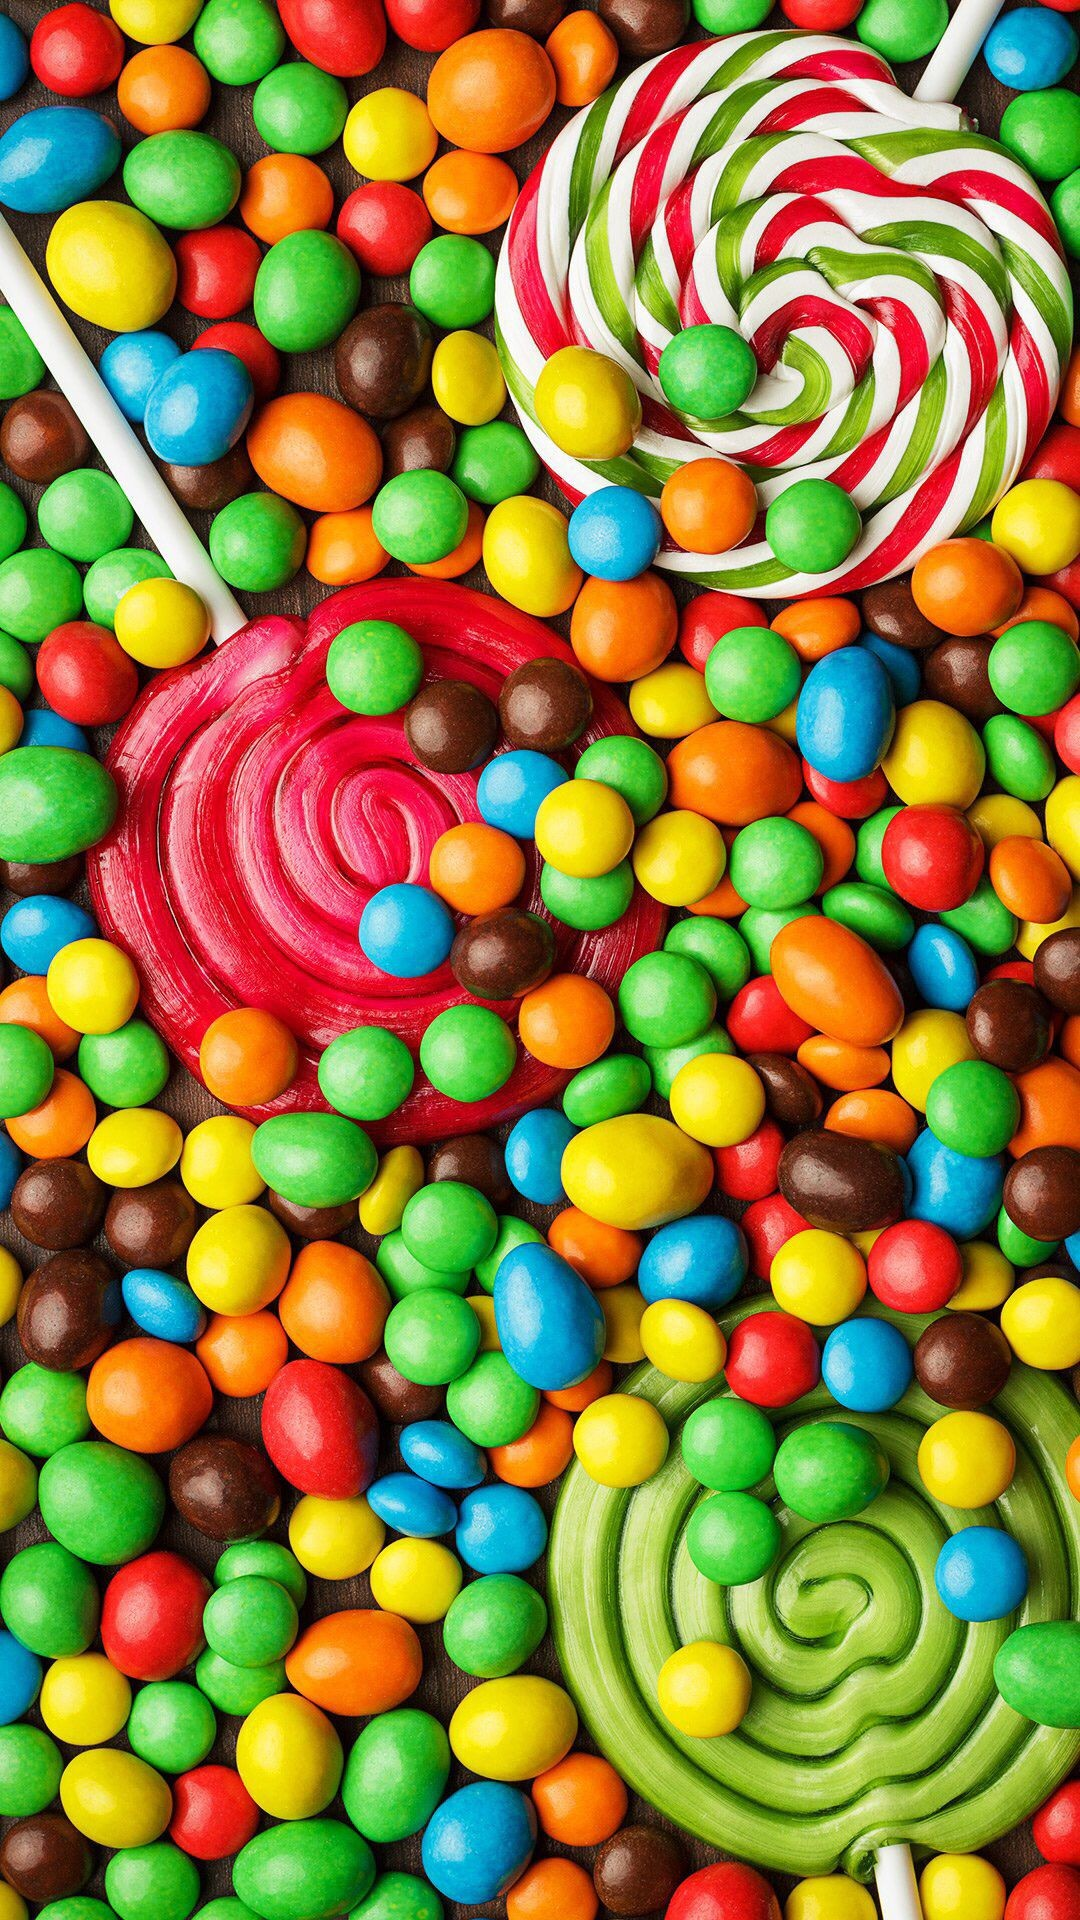 Res: 1080x1920, Candy.